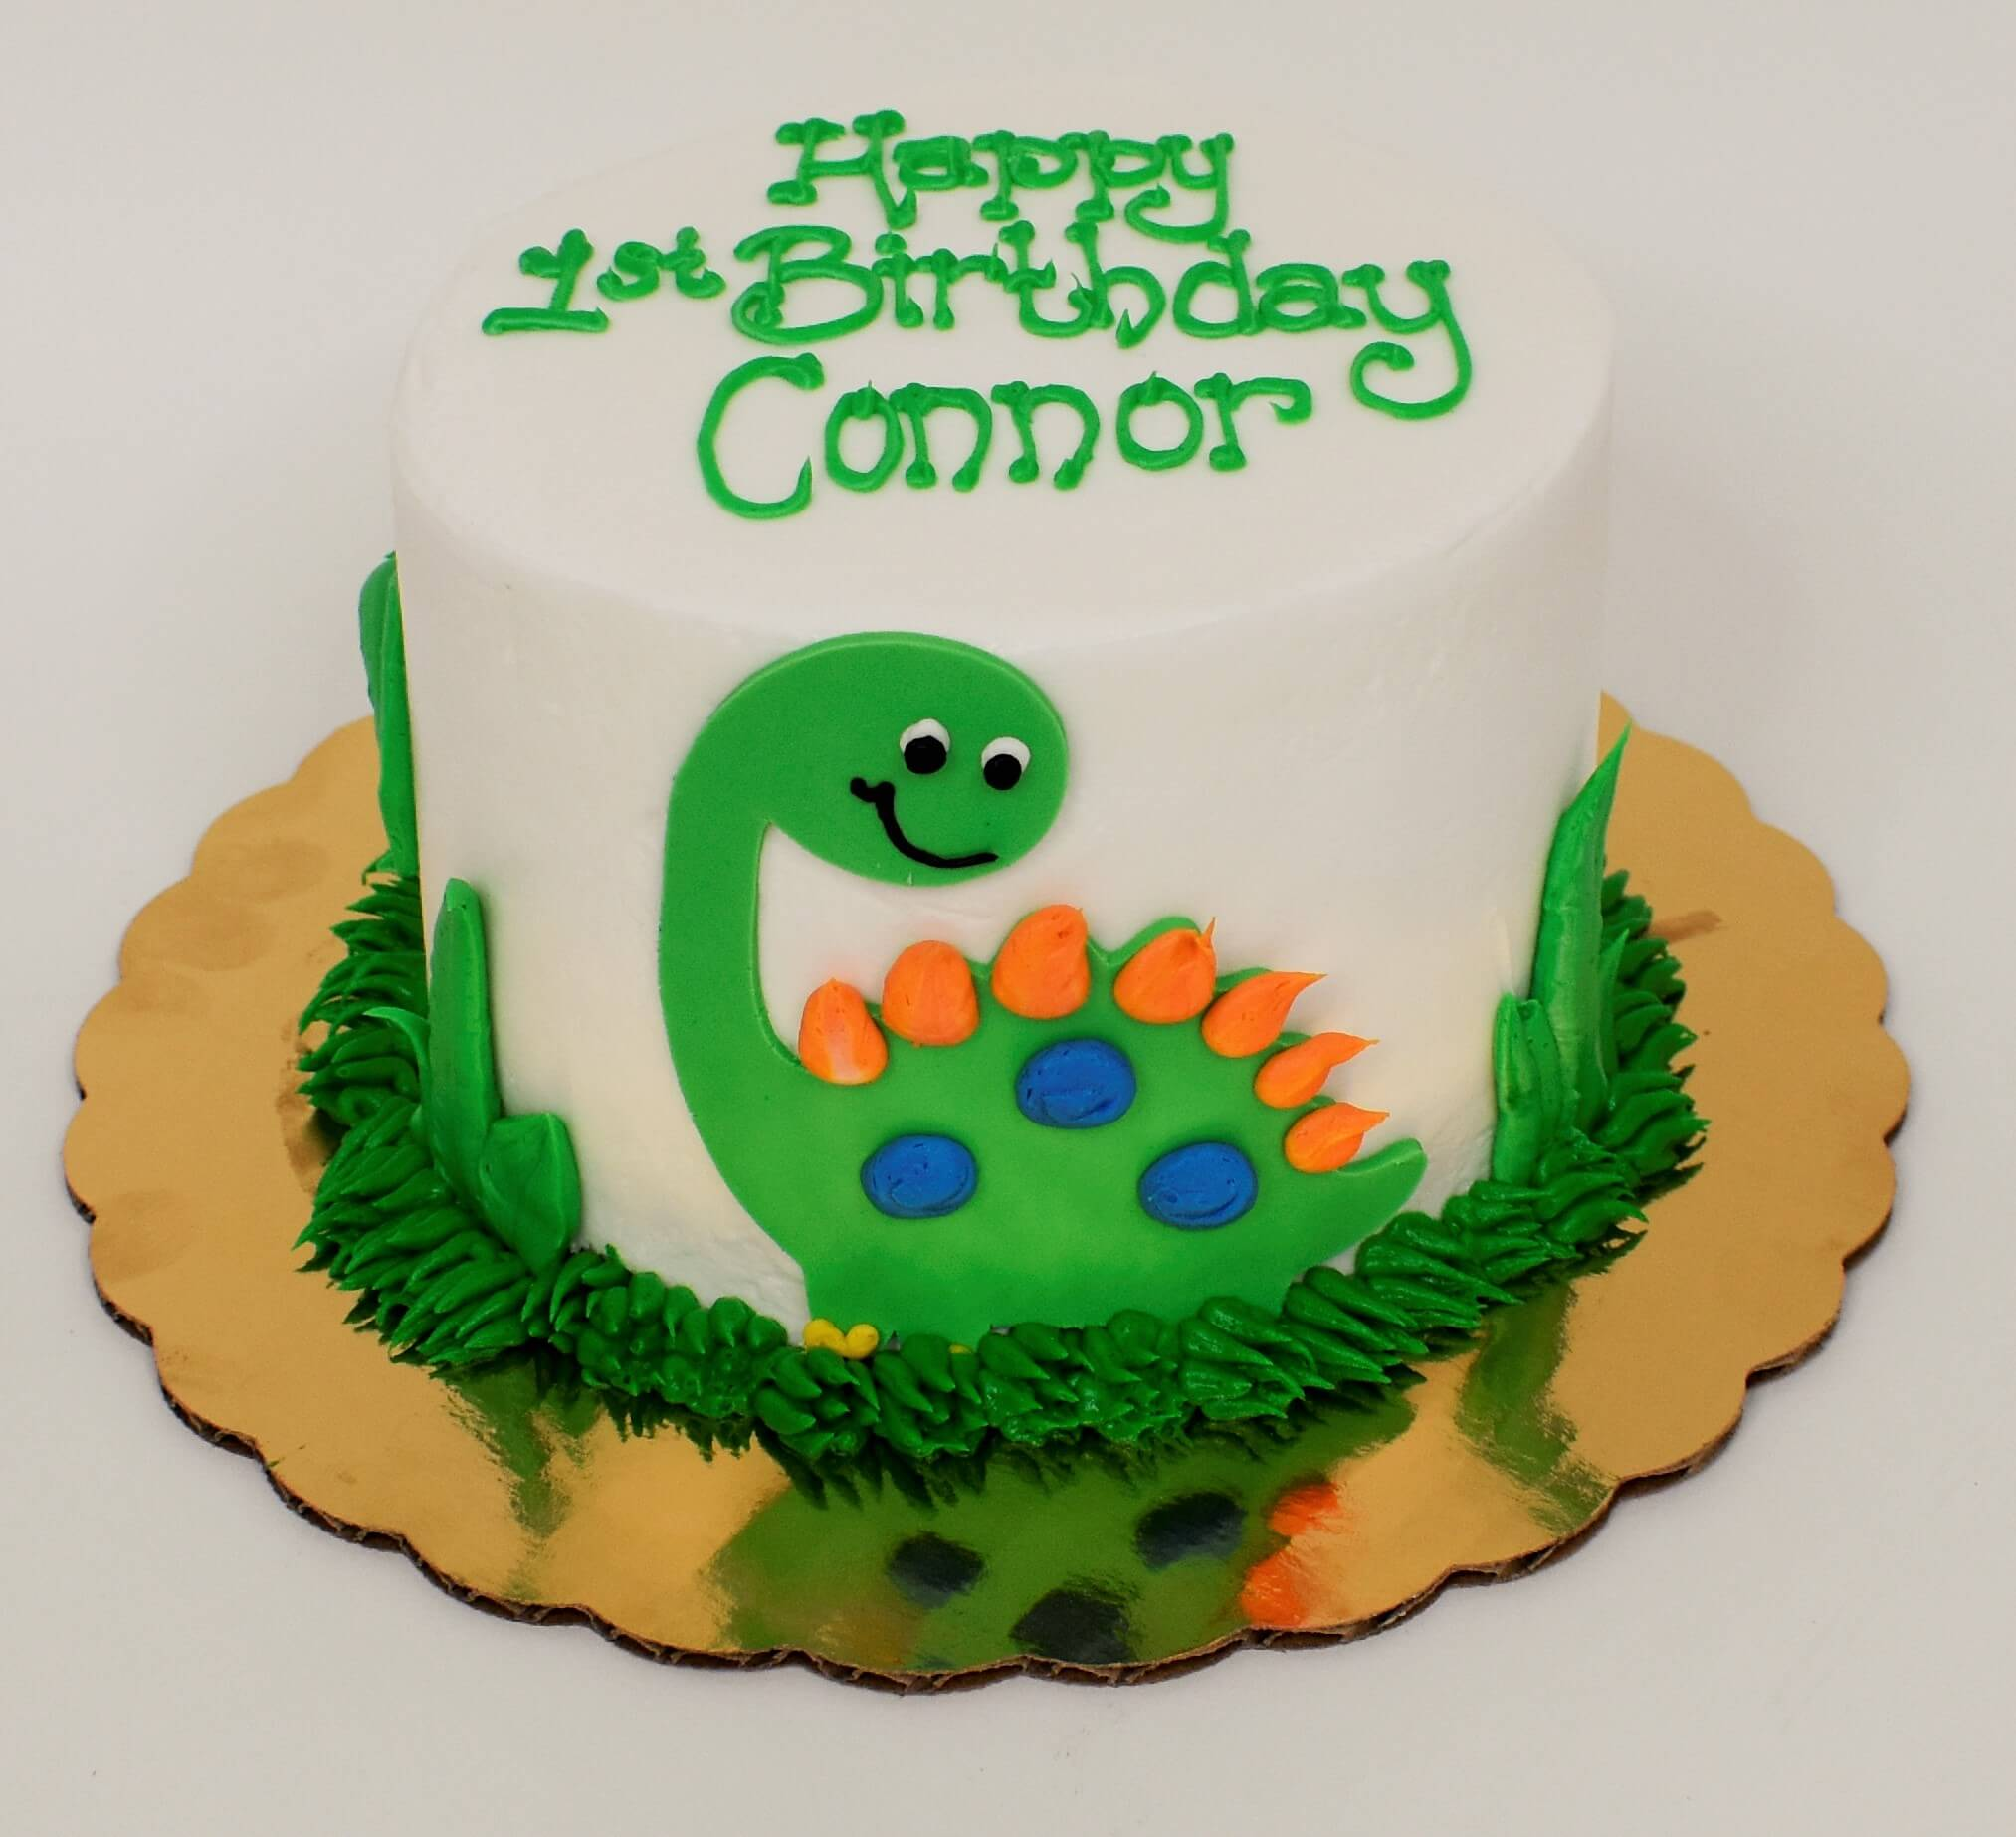 McArthur's Bakery Custom Cake with Green Dinasour and Green Grass